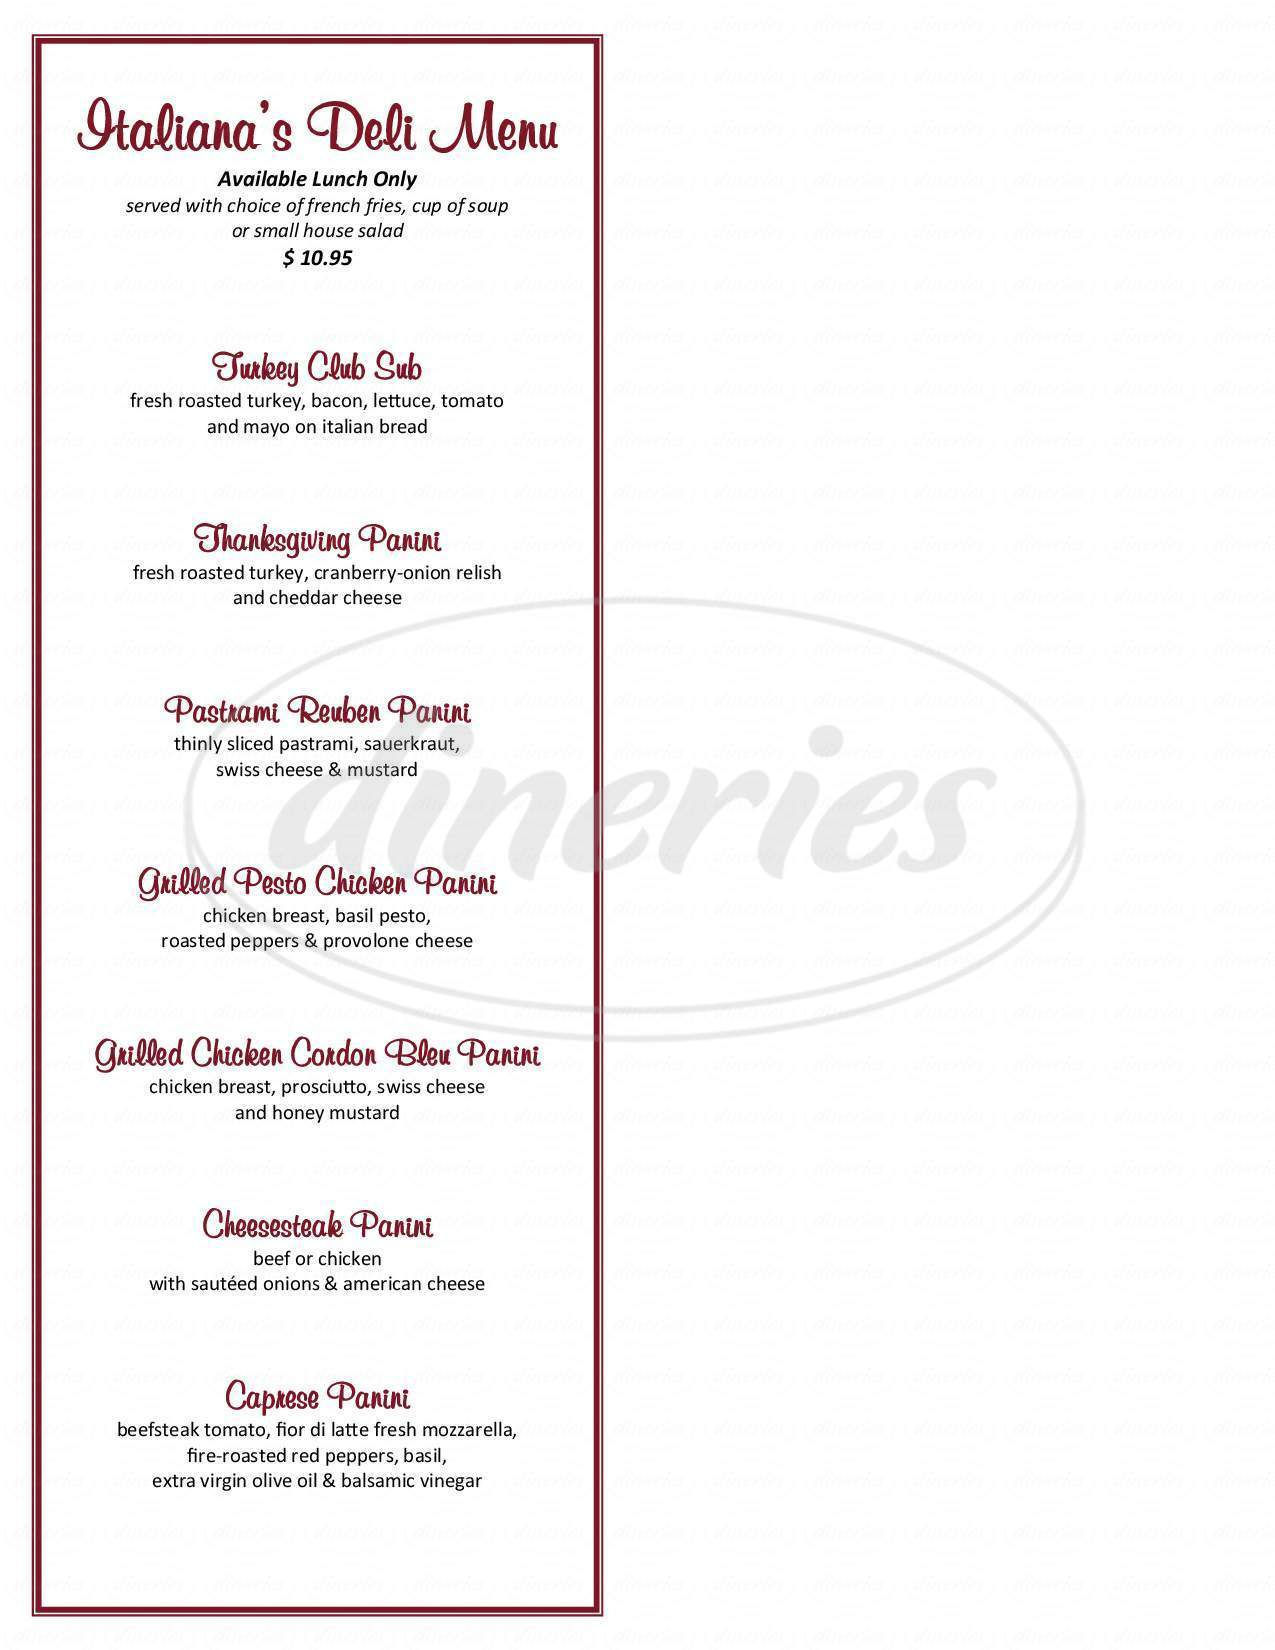 menu for Italiana's